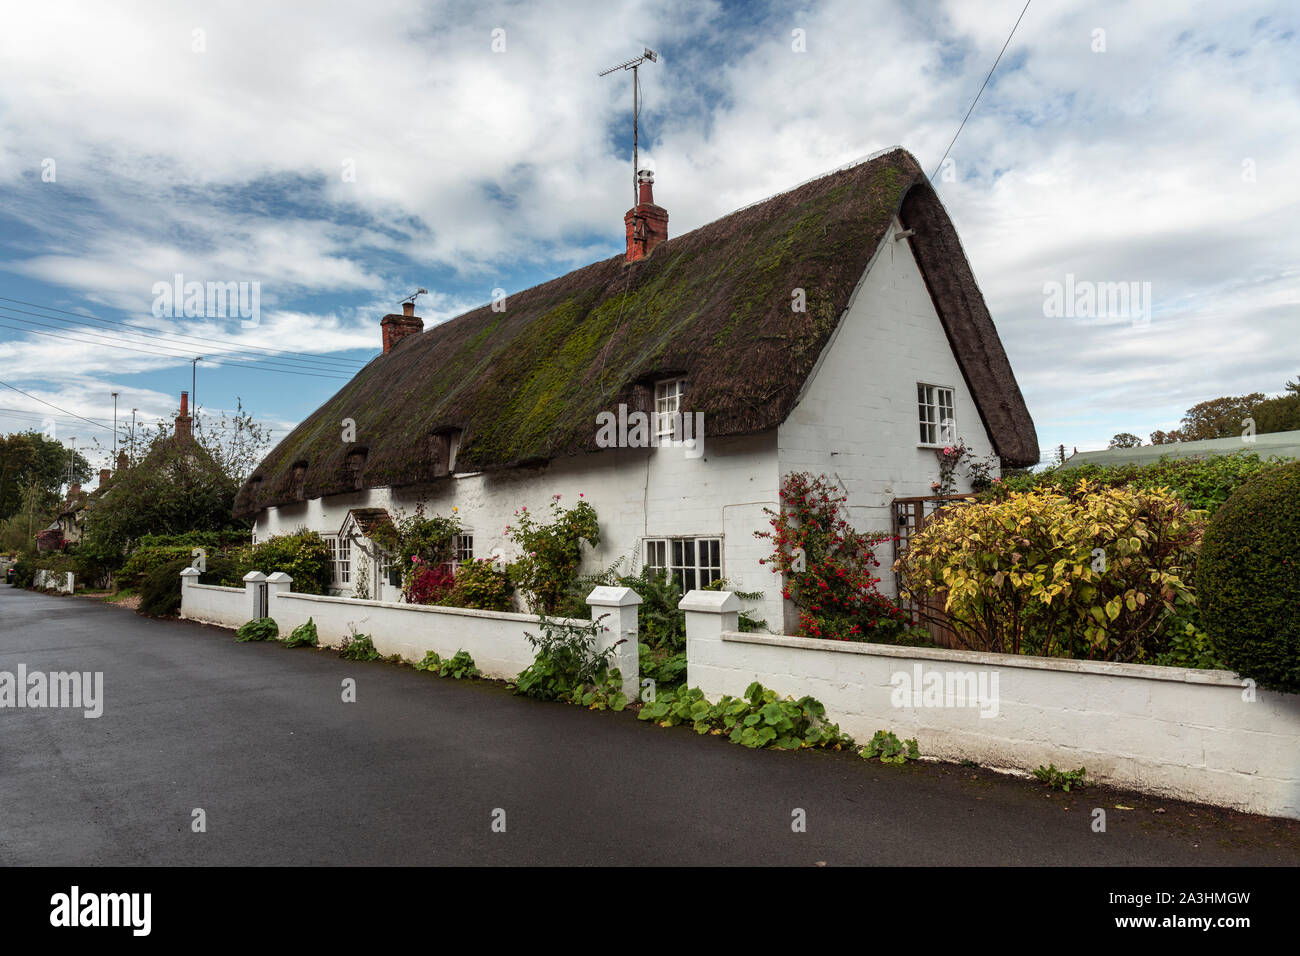 A white thatached cottage in Avebury village Wiltshire, England Stock Photo